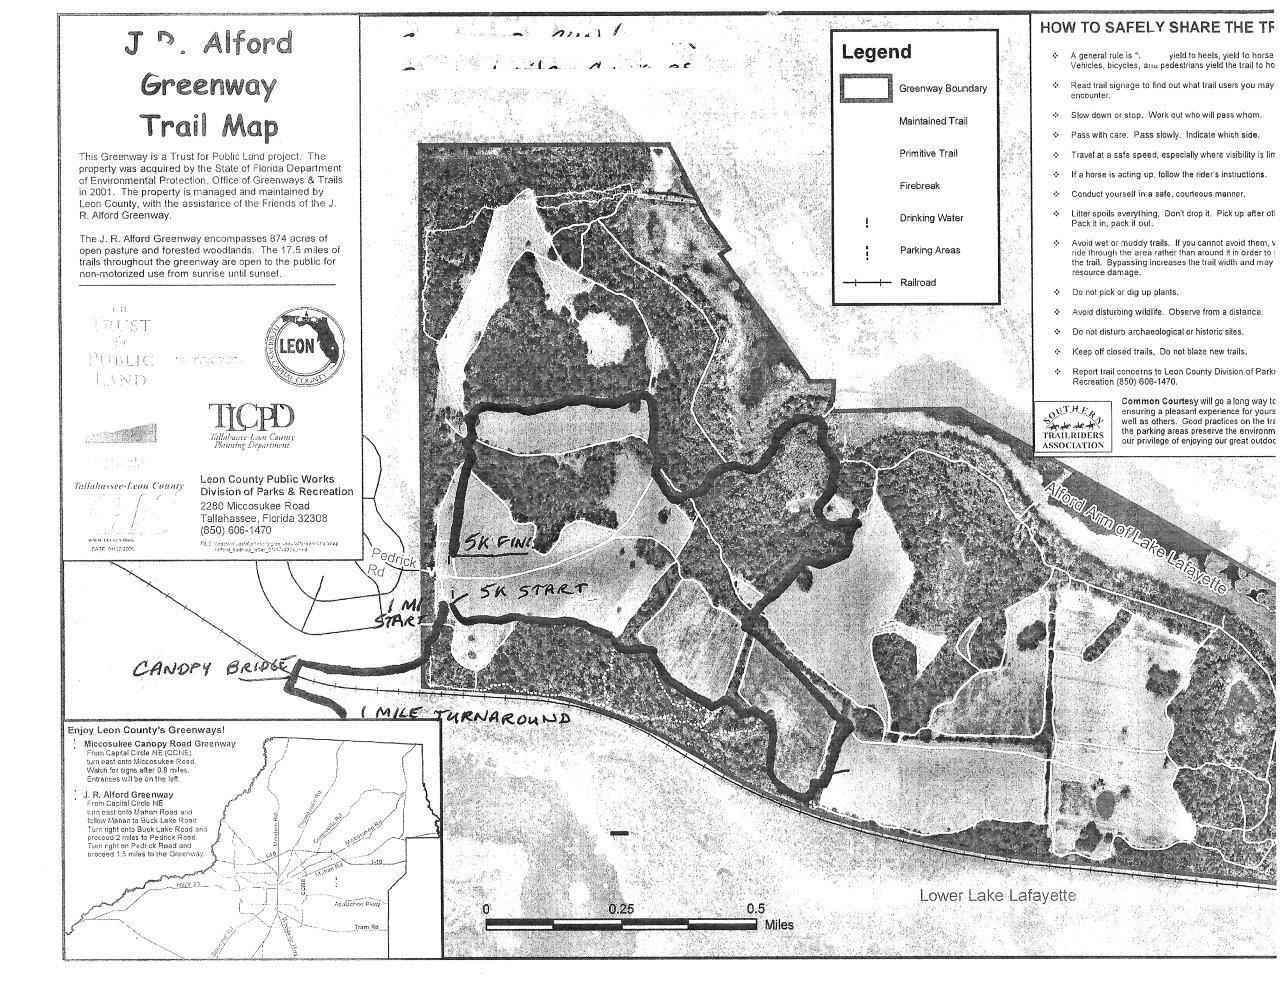 5K / 1M Run Map - J R Alford Greenway